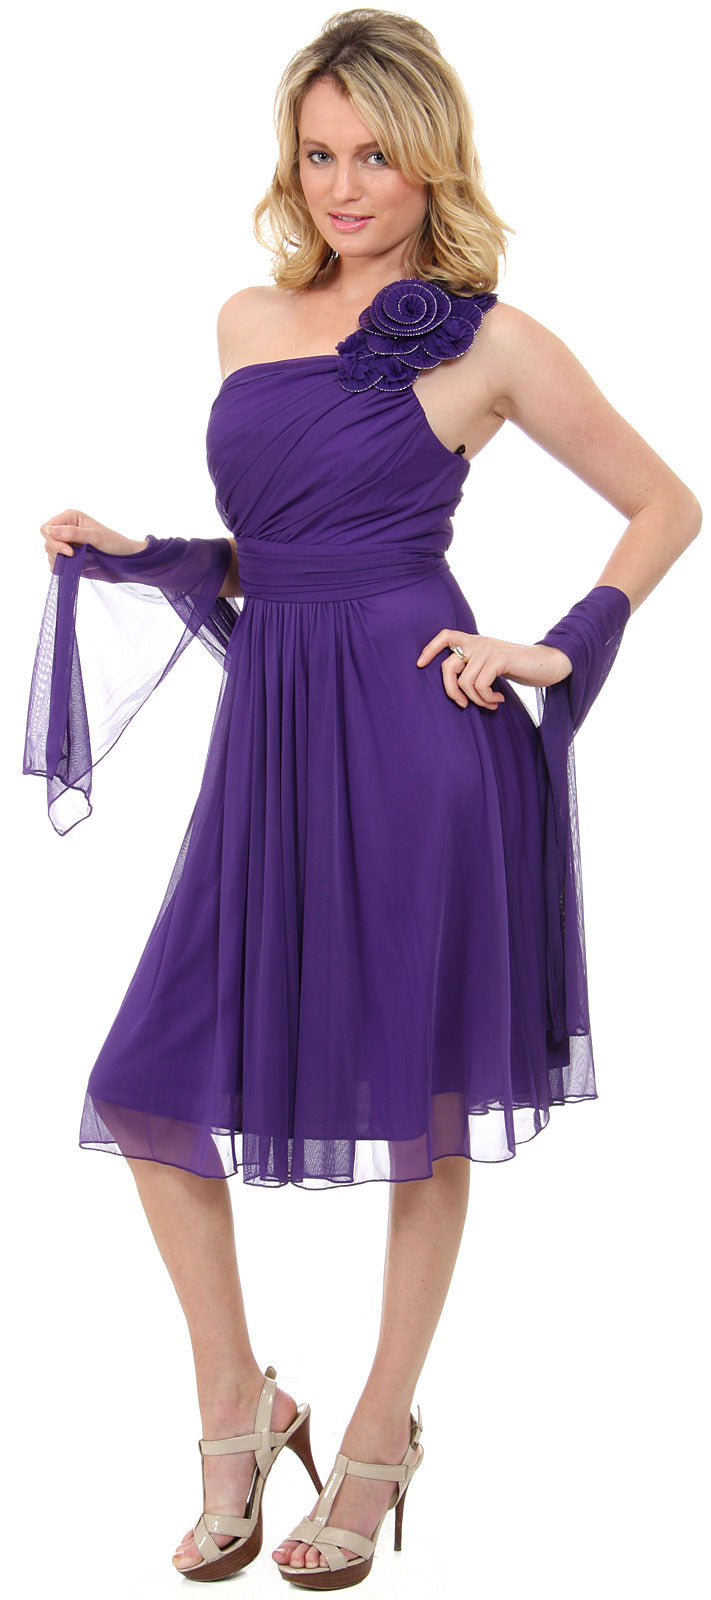 Image of One Soulder Floral Accent Short Party Dress  in Purple